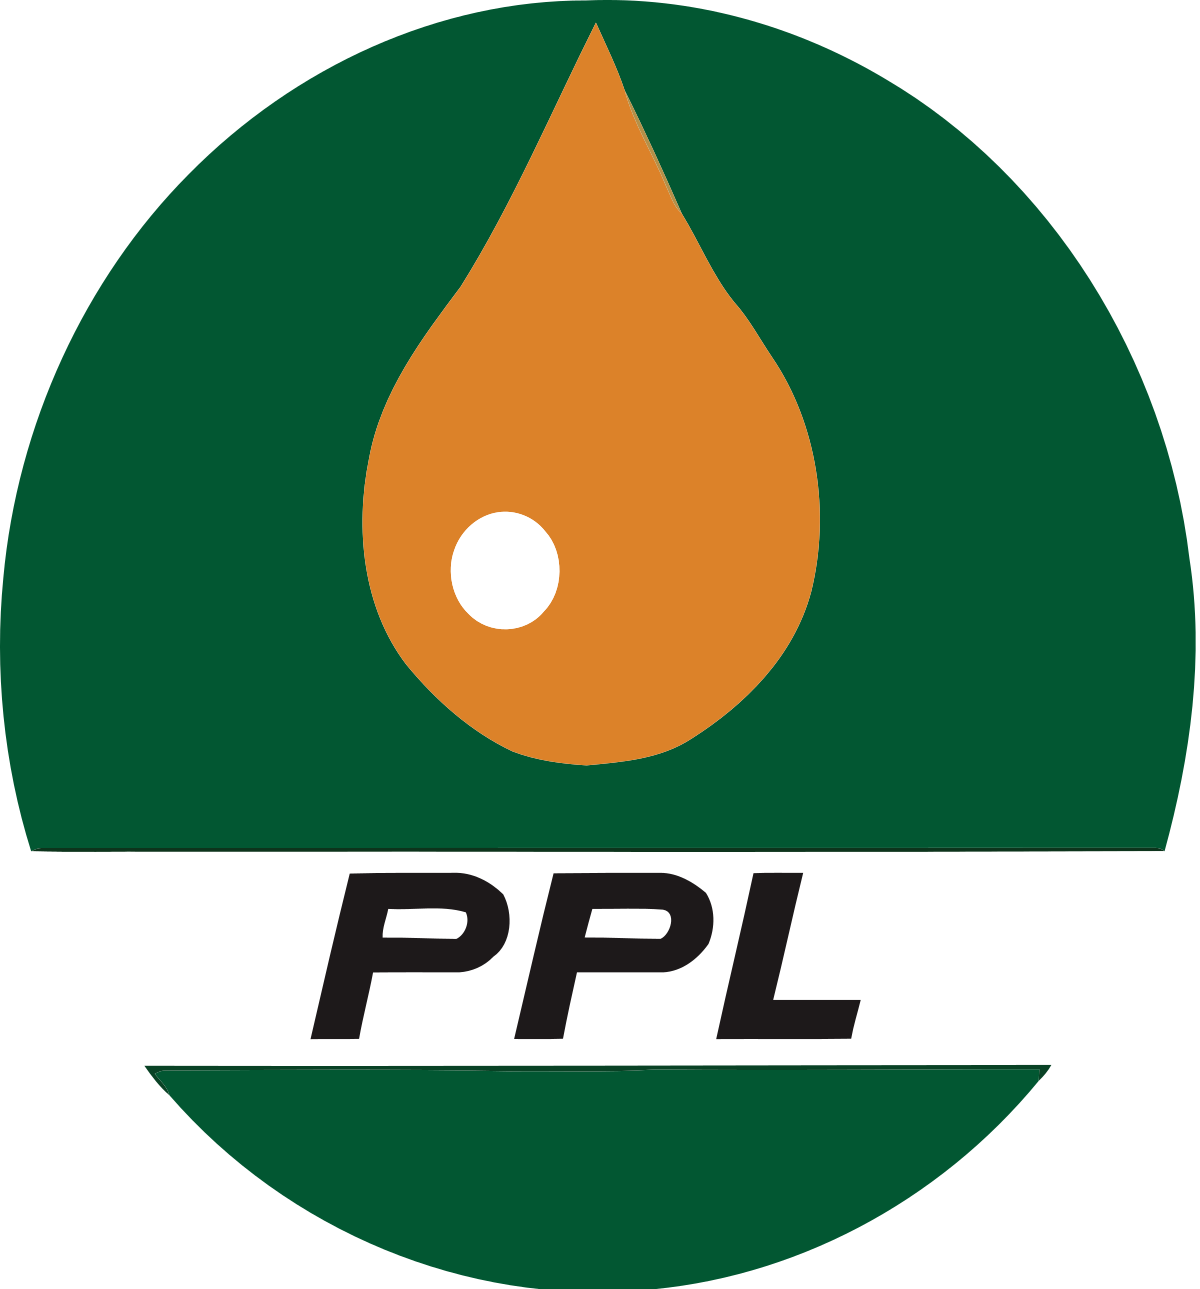 Pakistan Petroleum.